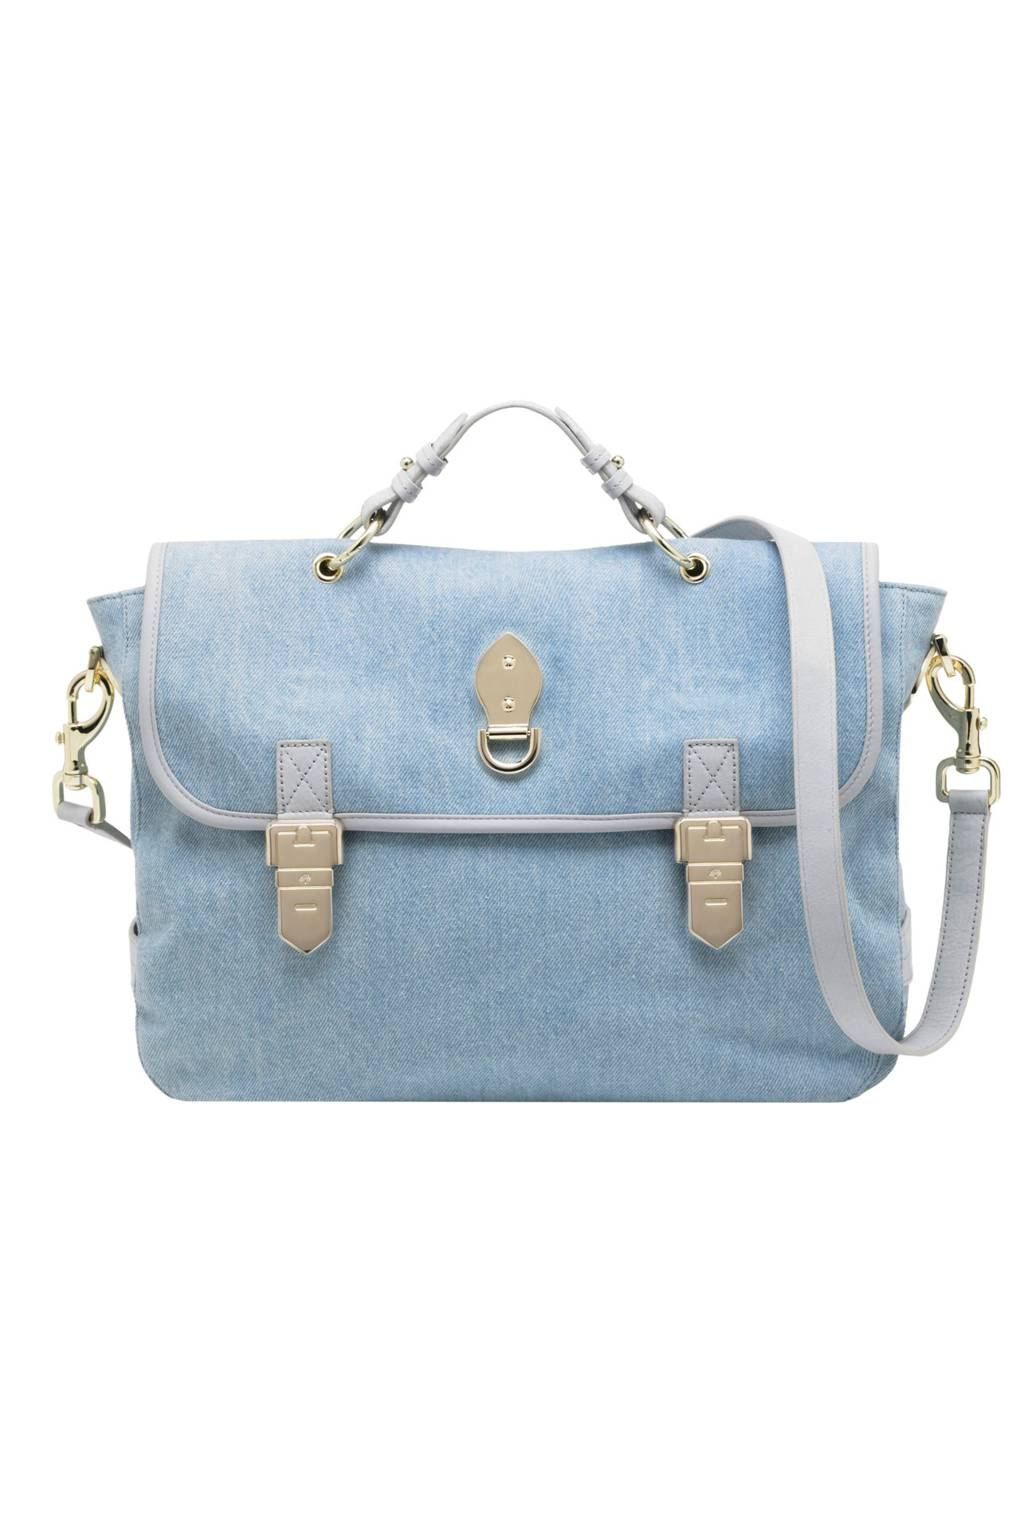 Mulberry Tillie Bag Emma Hill On New Alexa And Bayswater British Tote Blue Print Vogue